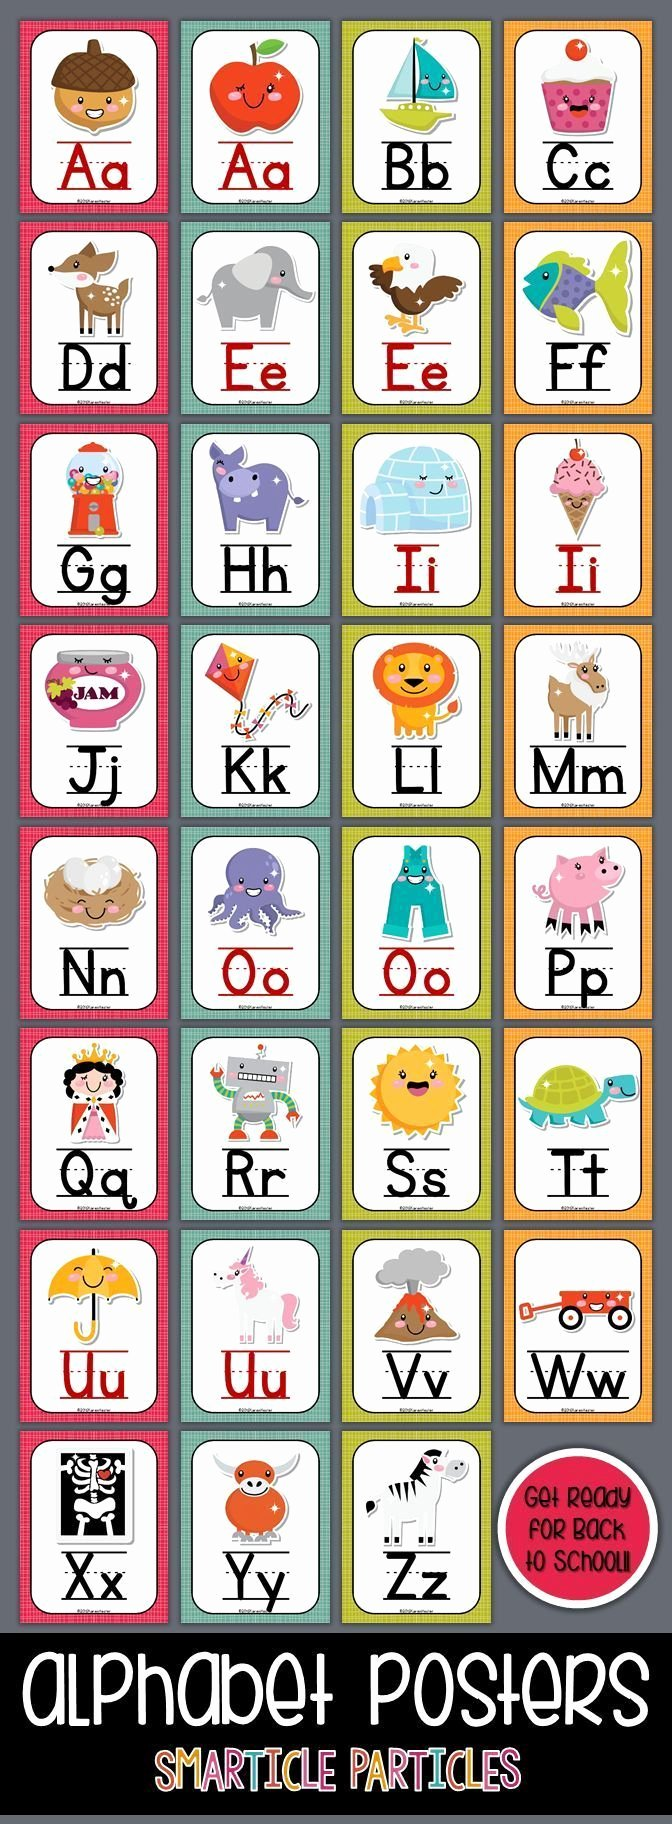 Alphabet Poster for Classroom Luxury Alphabet Posters Kawaii Style